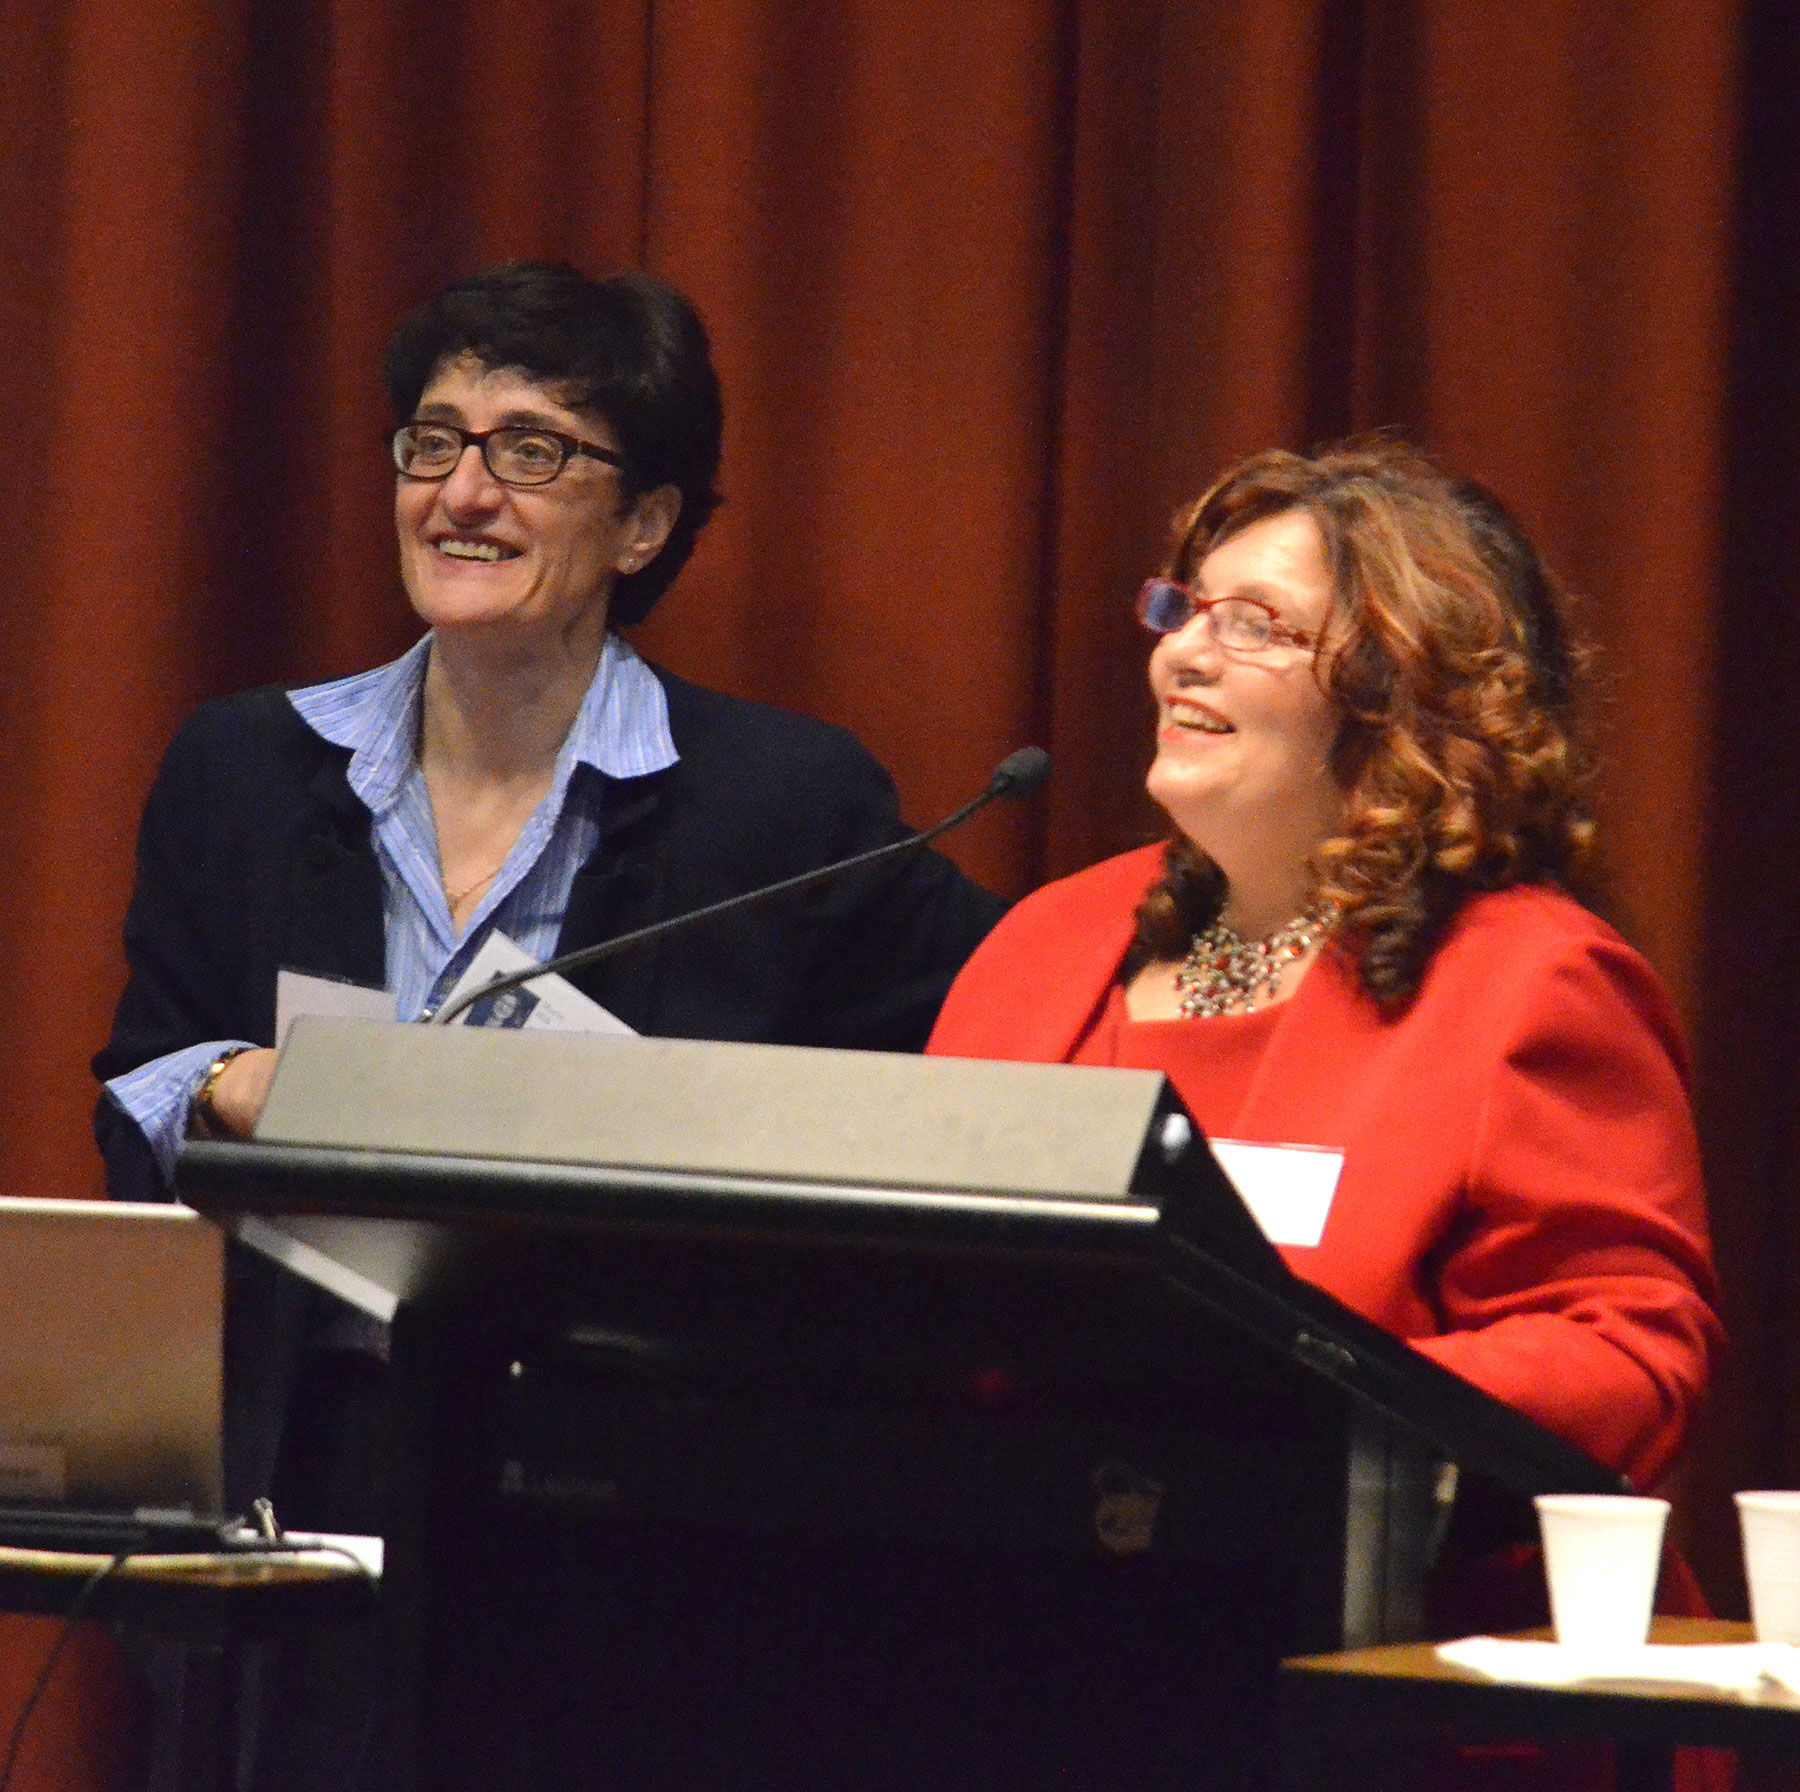 05 Symposium 6th Dec 2012. Keynote Speaker Prof Joy Damousi With Symposium Convenor Dr Maria Hill